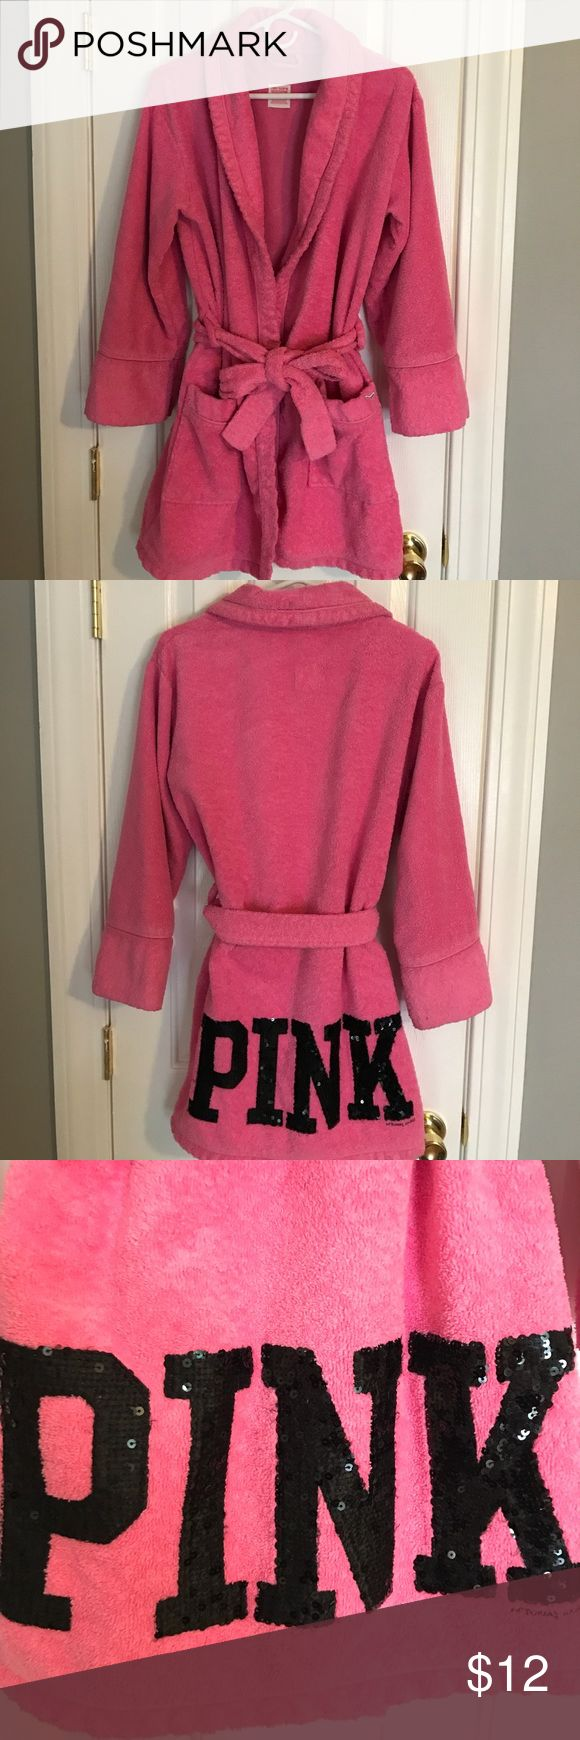 VS PINK robe Preloved Victoria's Secret PINK bathrobe in the color pink with black sequin lettering on back. Two pockets in the front, large sash to go around outside and inner dash to tie closed. ** preloved and preworn, some of the sequins have fallen off, zoom into picture to see. Still in good condition, very comfy, no stains or rips ** thicker material, like terry cloth so it keeps you nice and warm! PINK Victoria's Secret Intimates & Sleepwear Robes